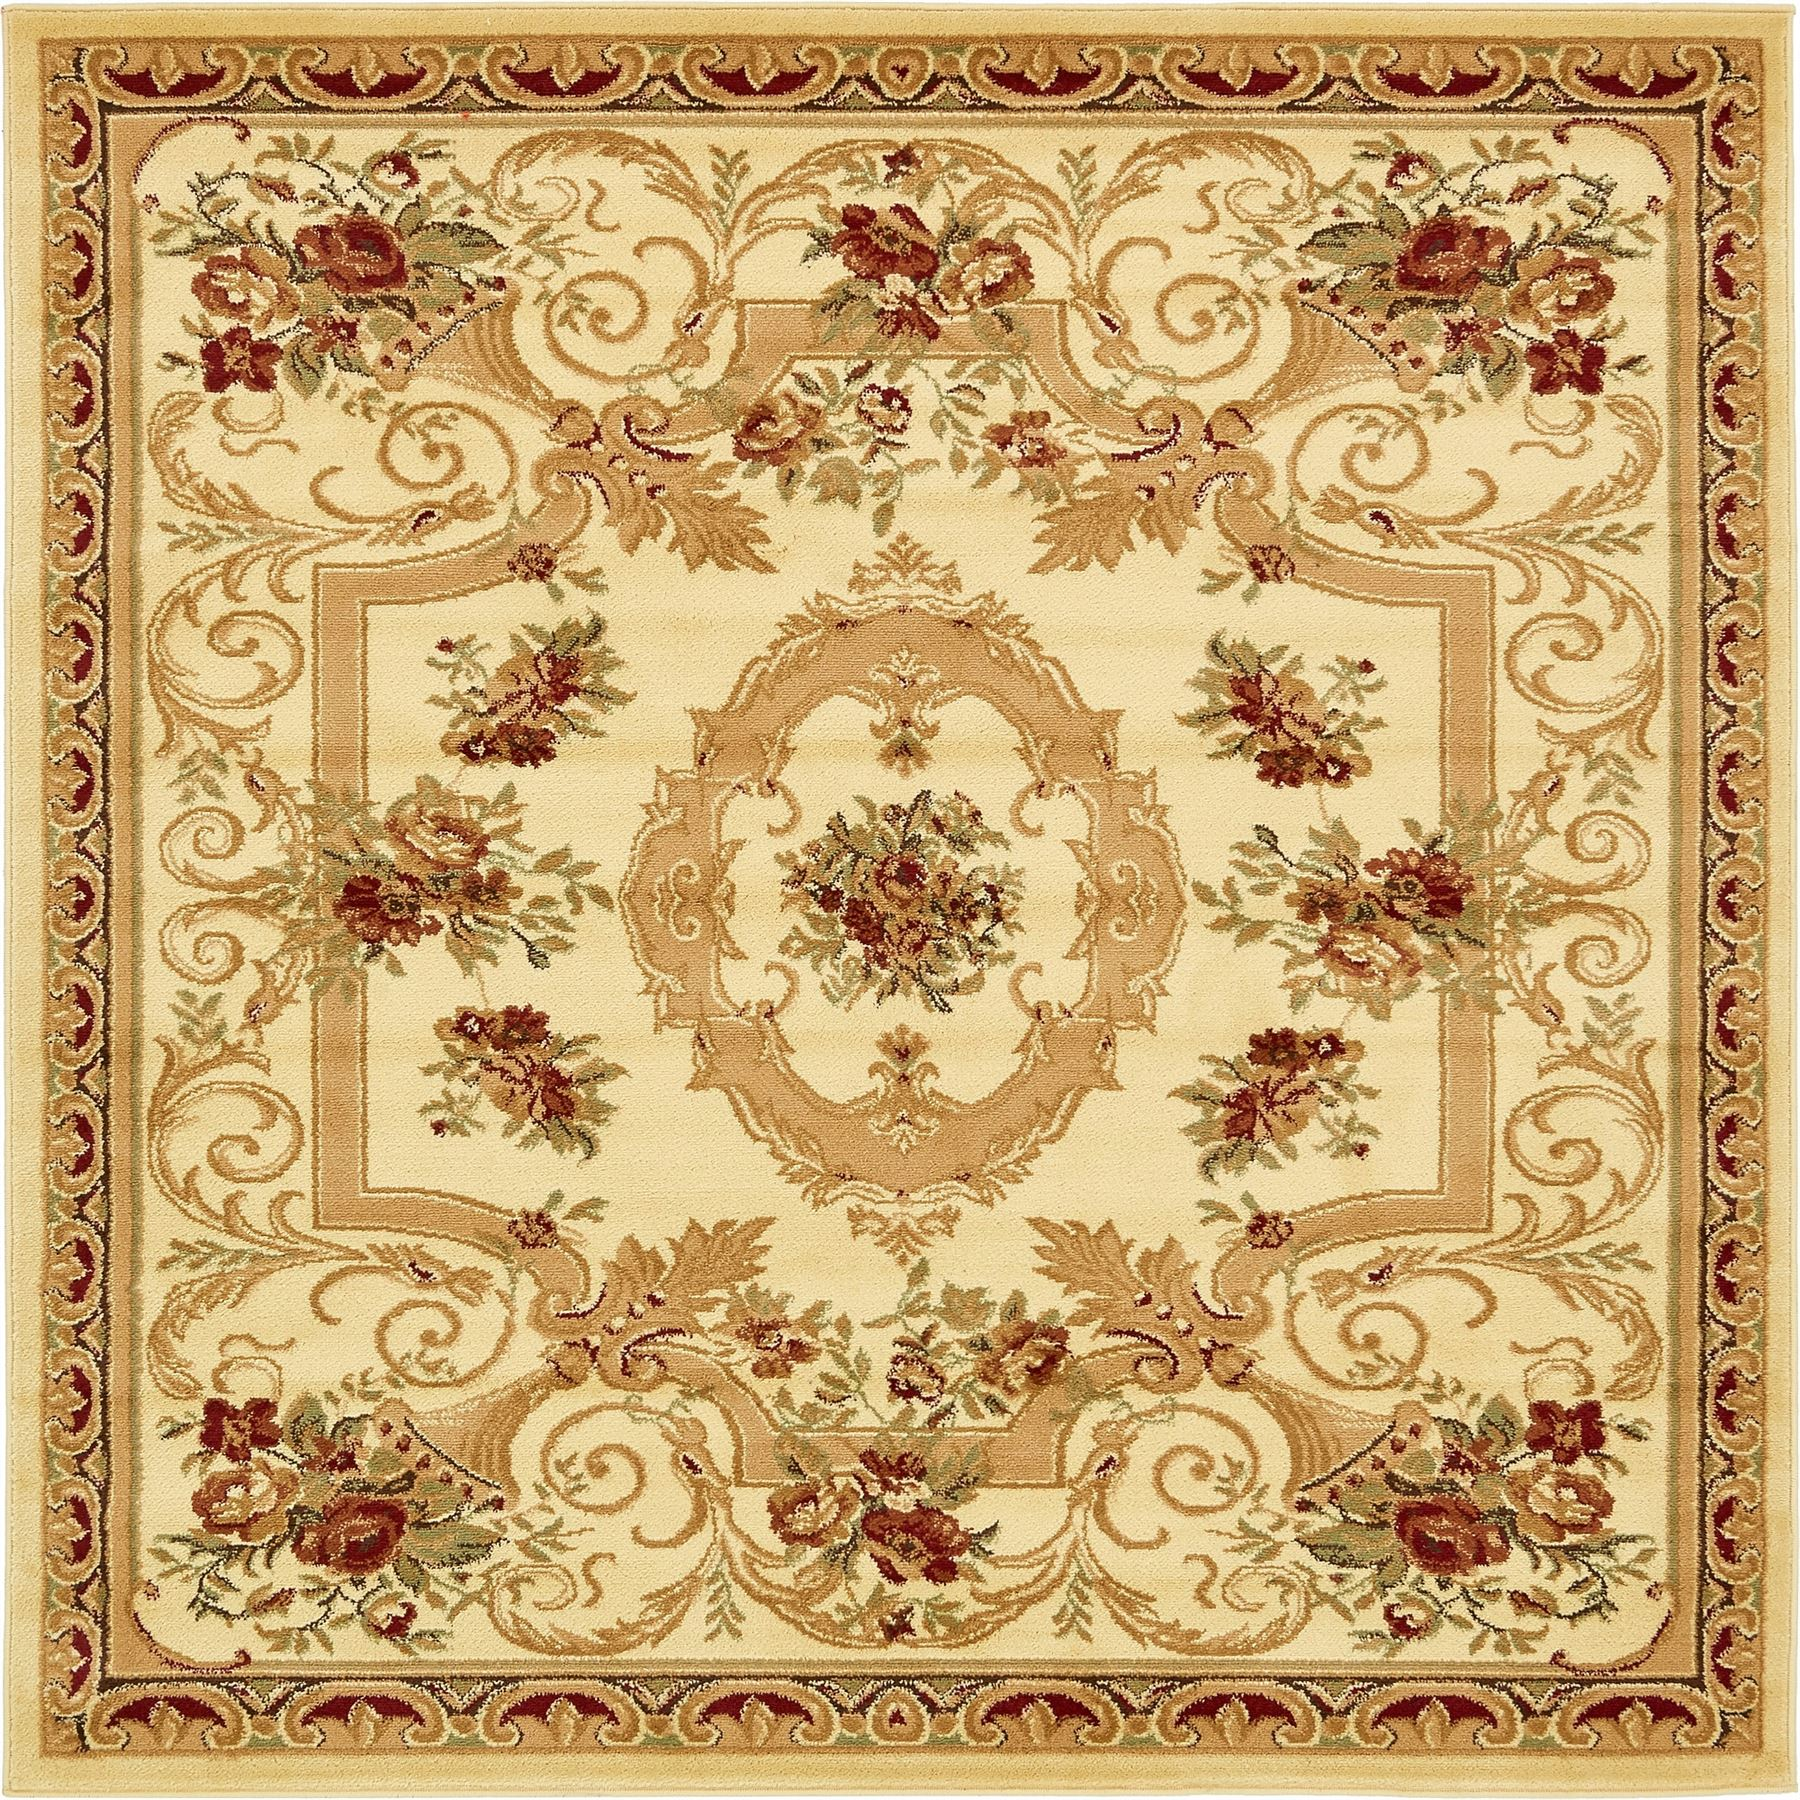 Oriental-Large-Area-Rug-Square-Traditional-Country-Round-Carpet-Medallion-Small thumbnail 24